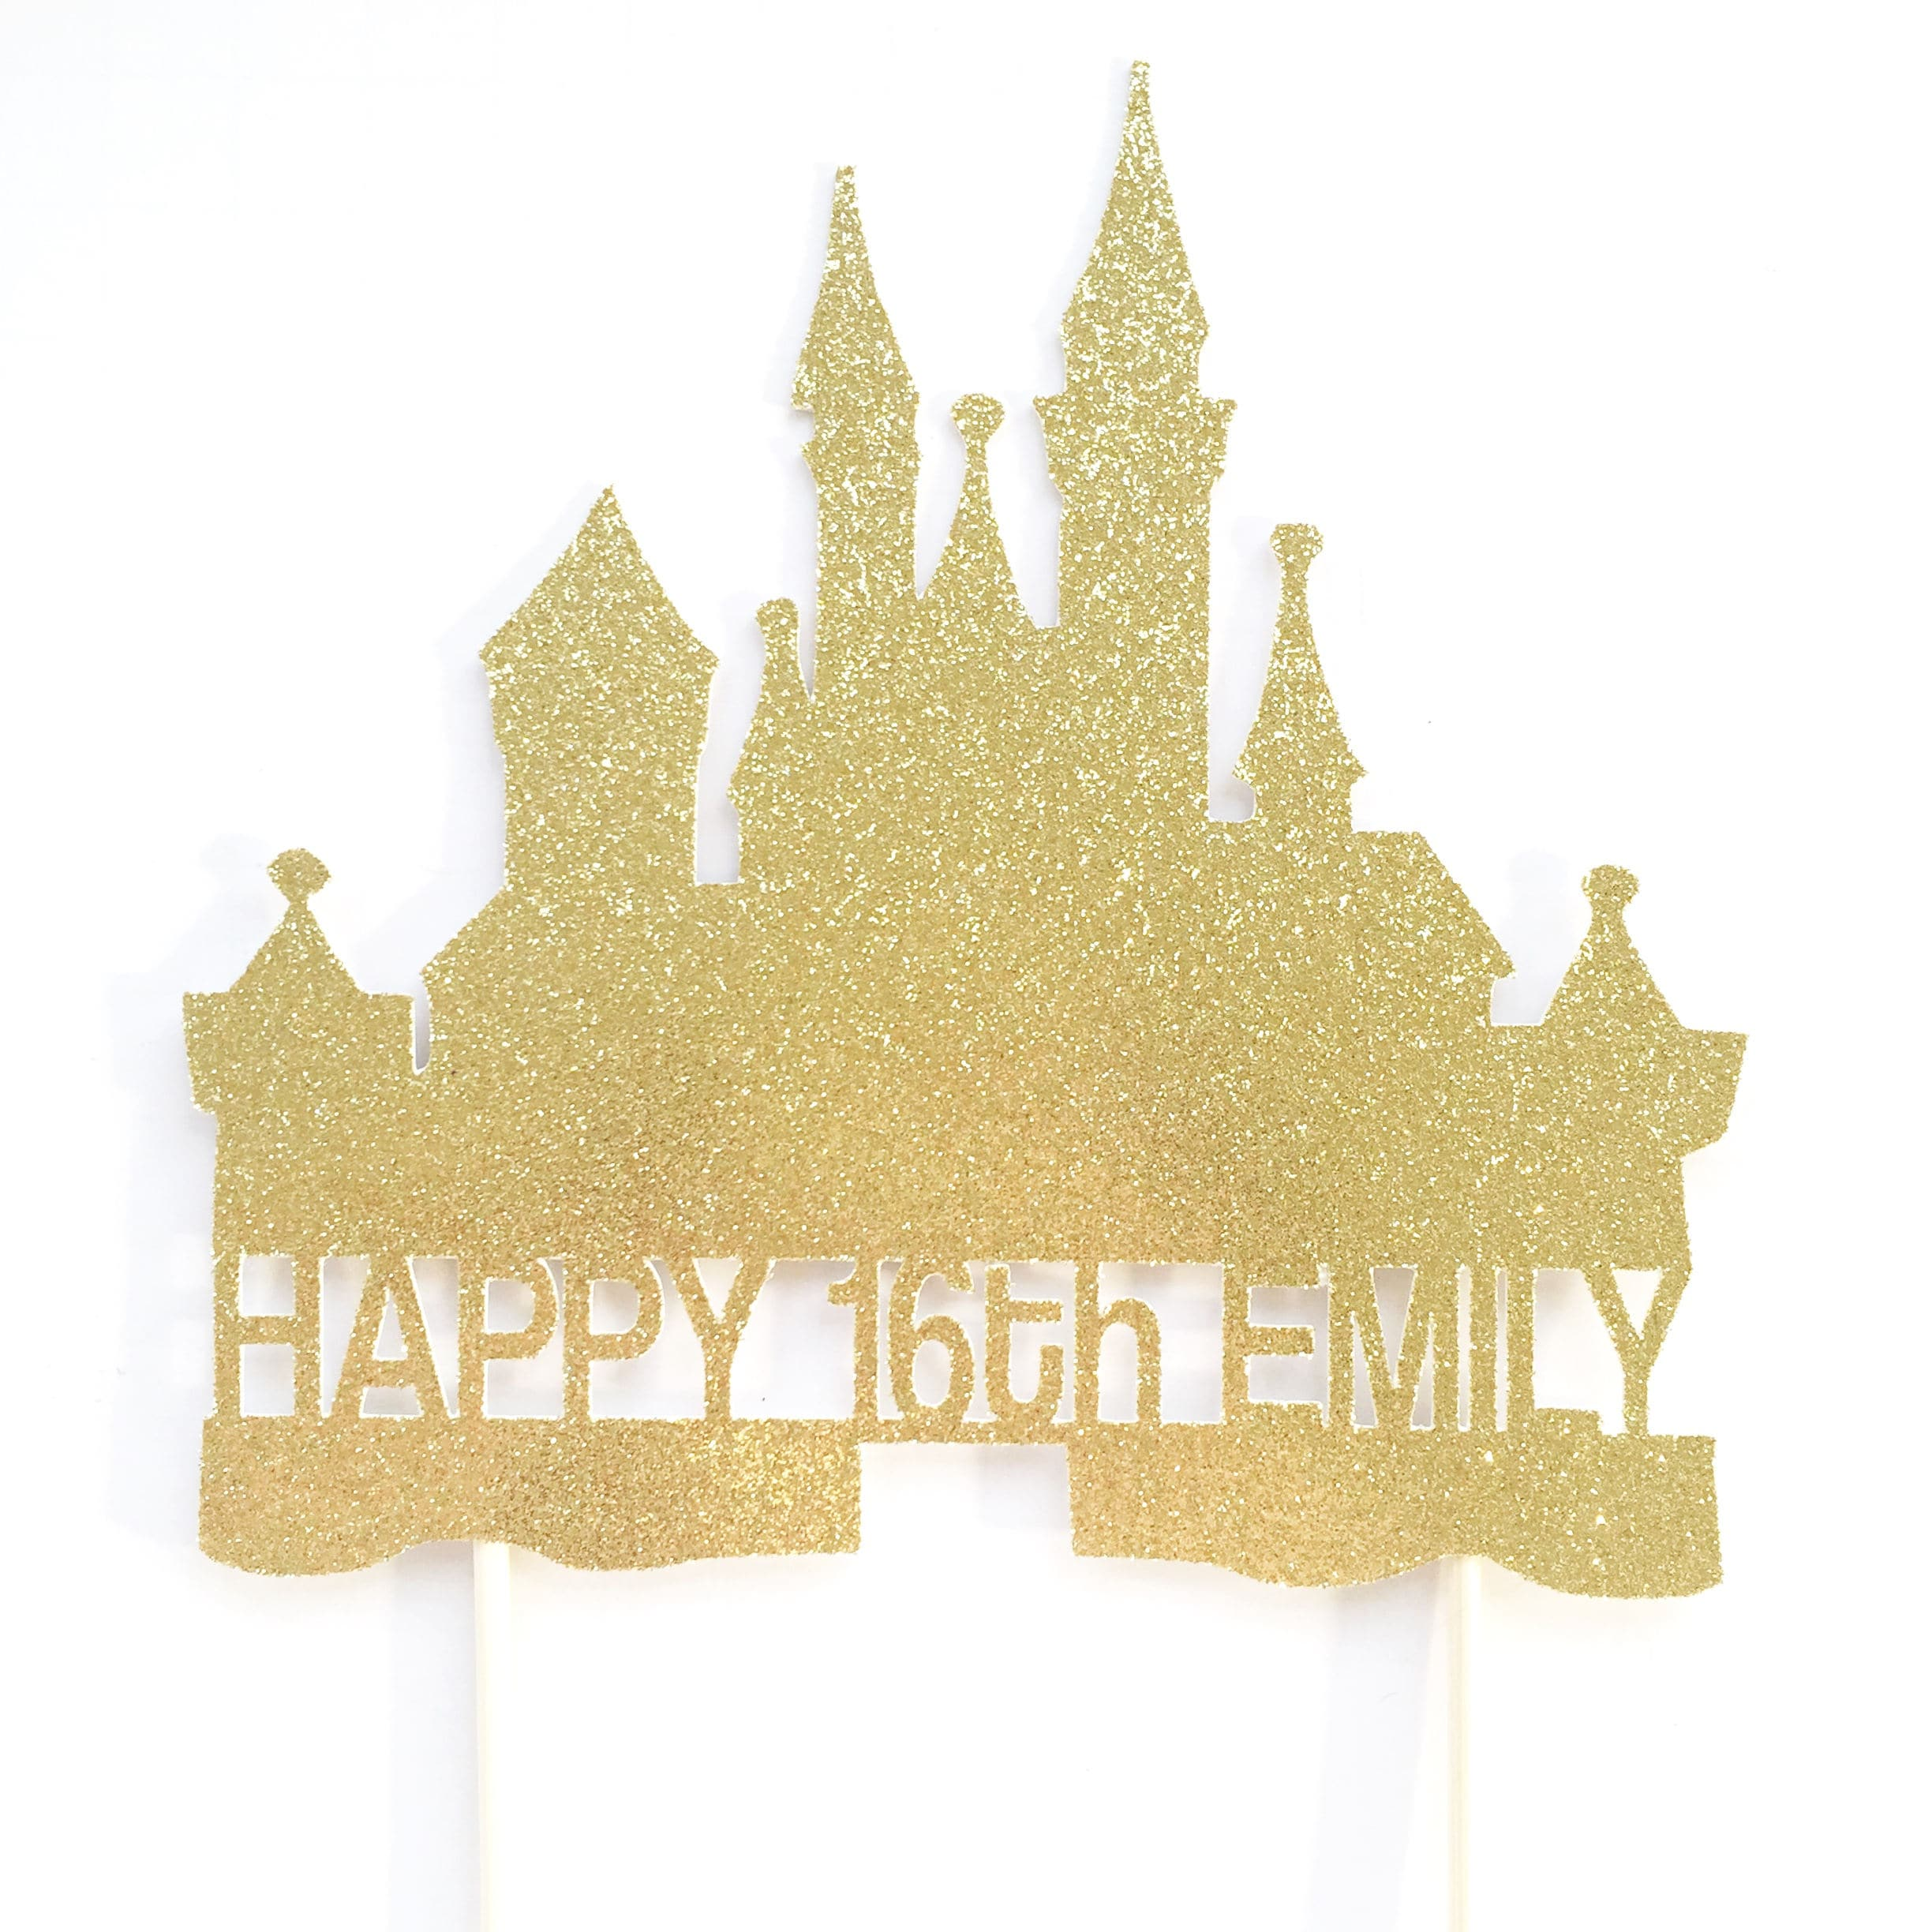 Astonishing Castle Cake Topper Princess Birthday Party Princess Cake Etsy Funny Birthday Cards Online Inifofree Goldxyz